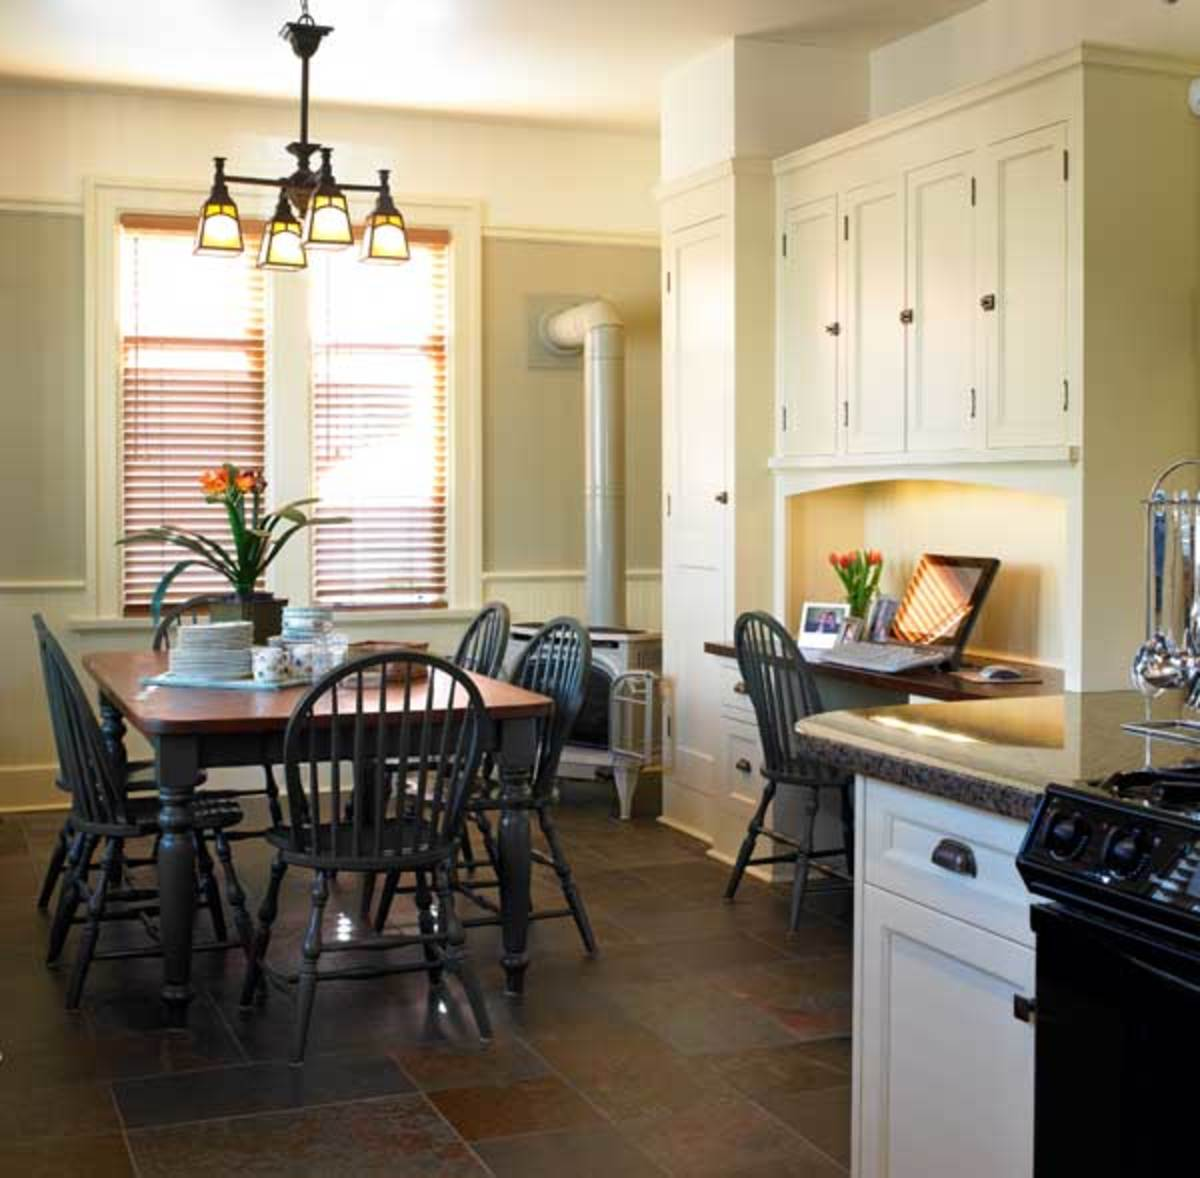 The previously remodeled kitchen was refitted with period wainscot, cabinets, and hardware.